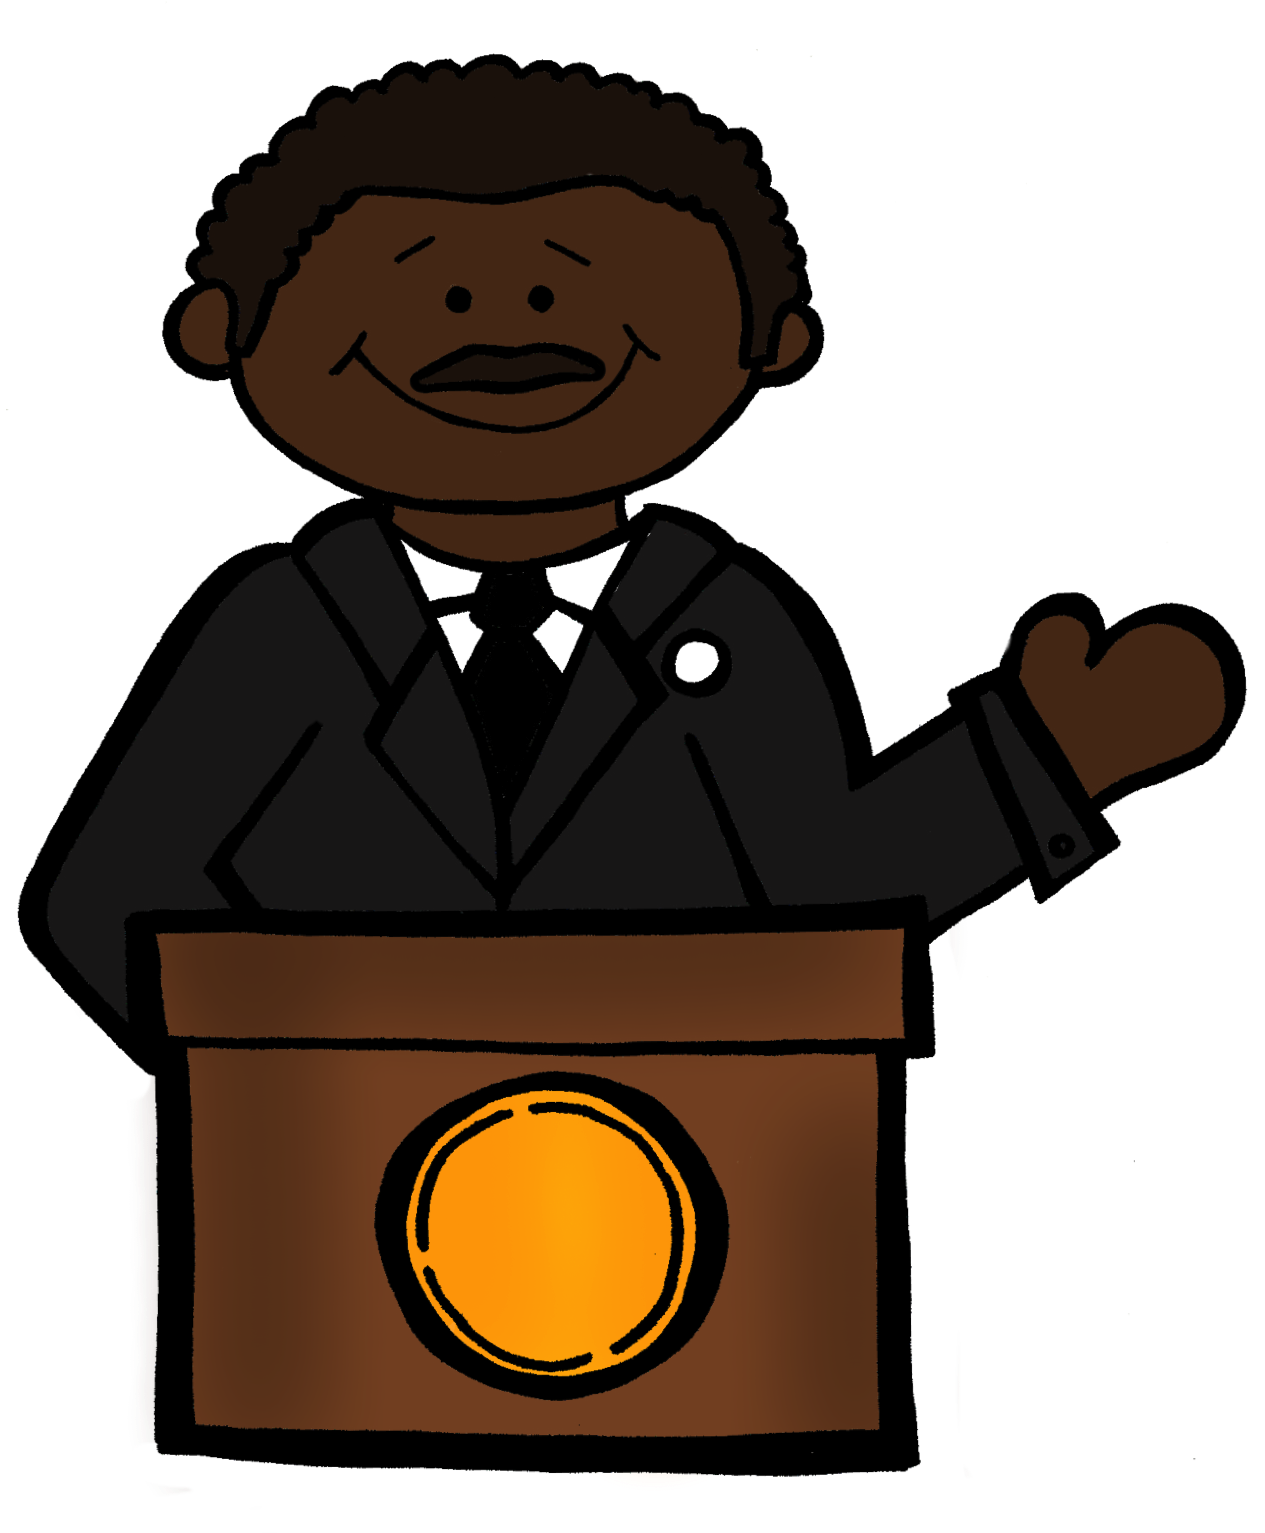 clip art martin luther king jr day - photo #16